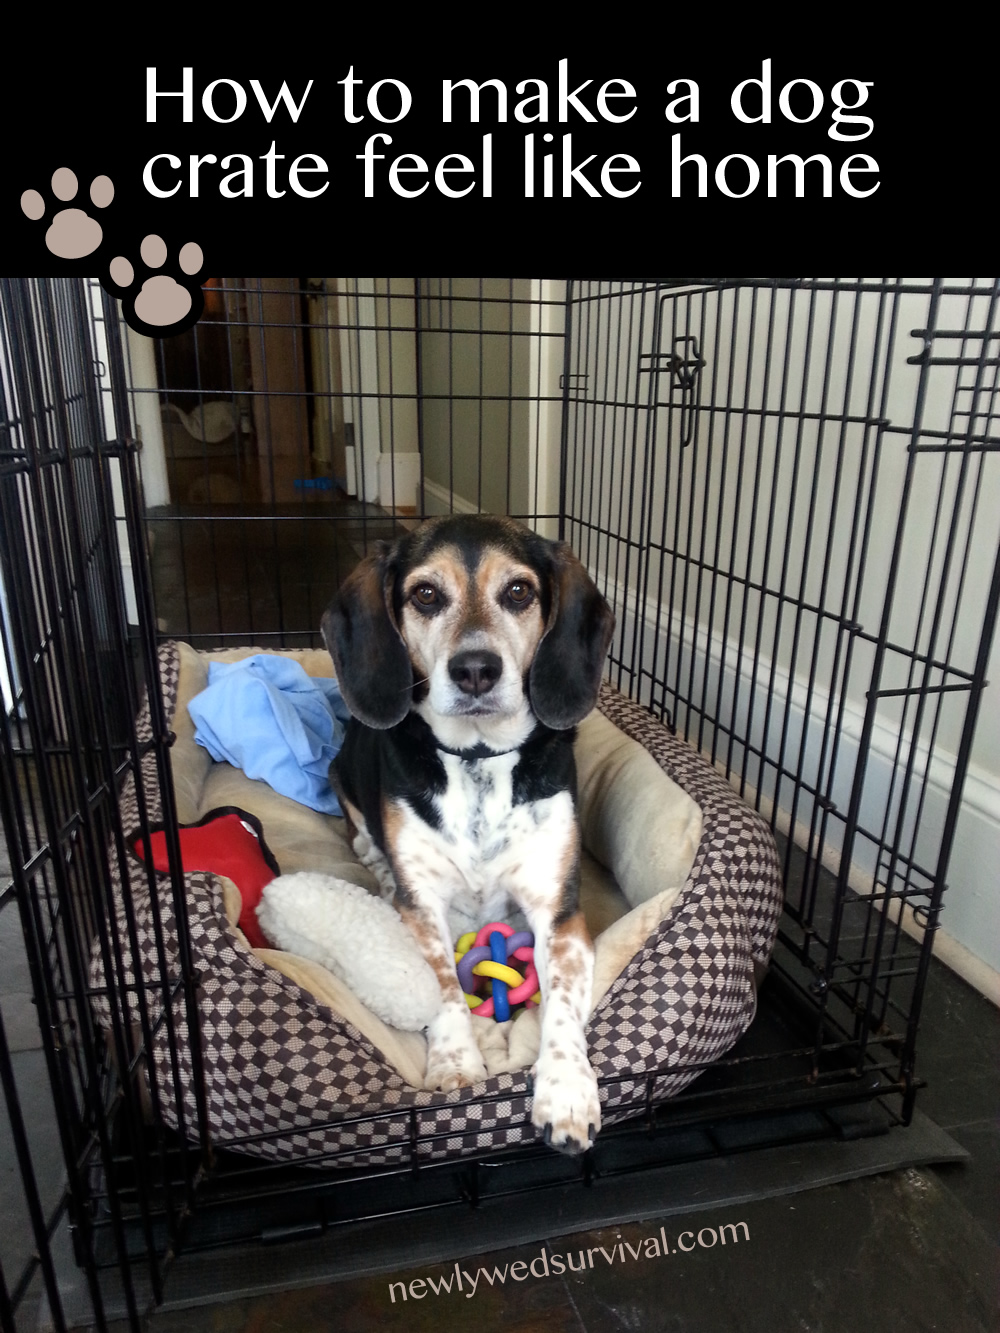 How to make a dog crate feel like home #CrateHappyPets #ad